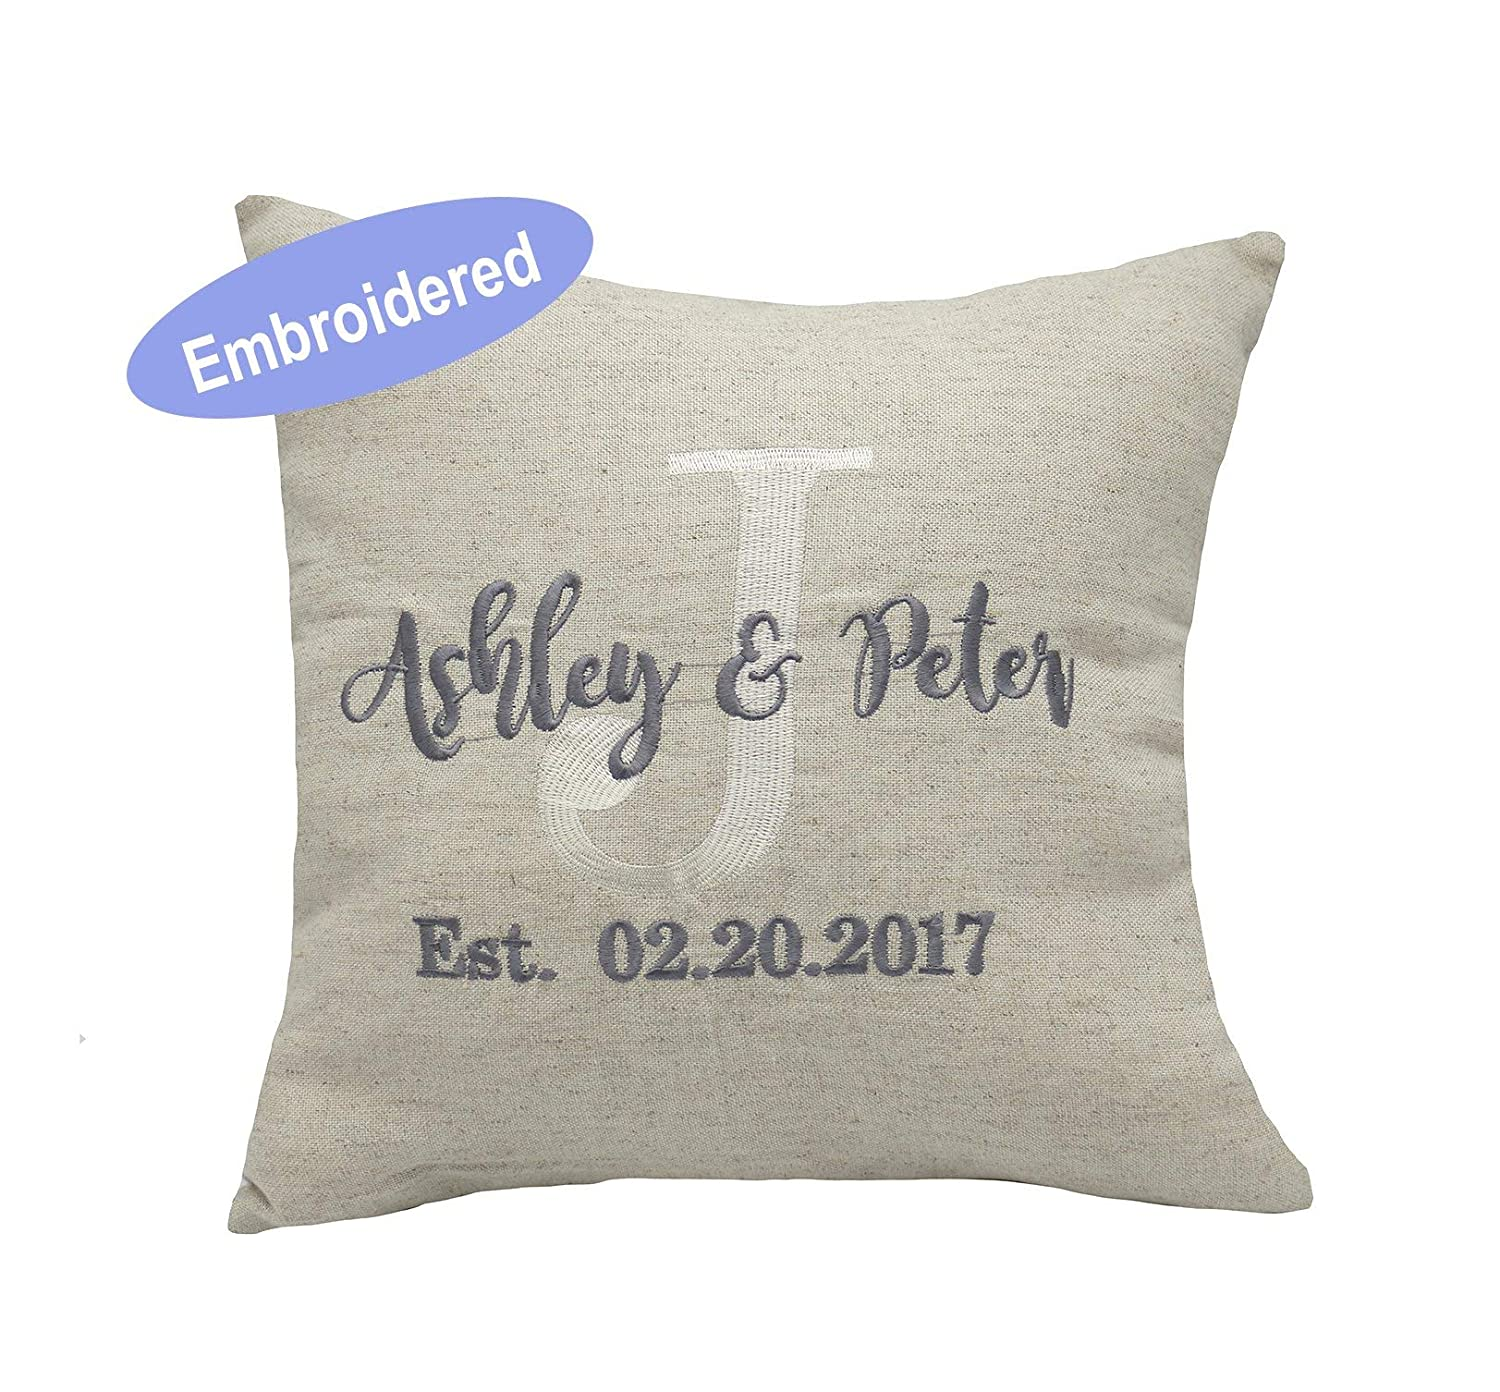 YugTex Cushion Cover Embroidered Pillow Covers, Couple Personalized Throw Pillowcases, Gifts for Wedding, Housewarming, Couple Gifts, Nursery, Valentine, Anniversary Gifts,Christmas Gifts.